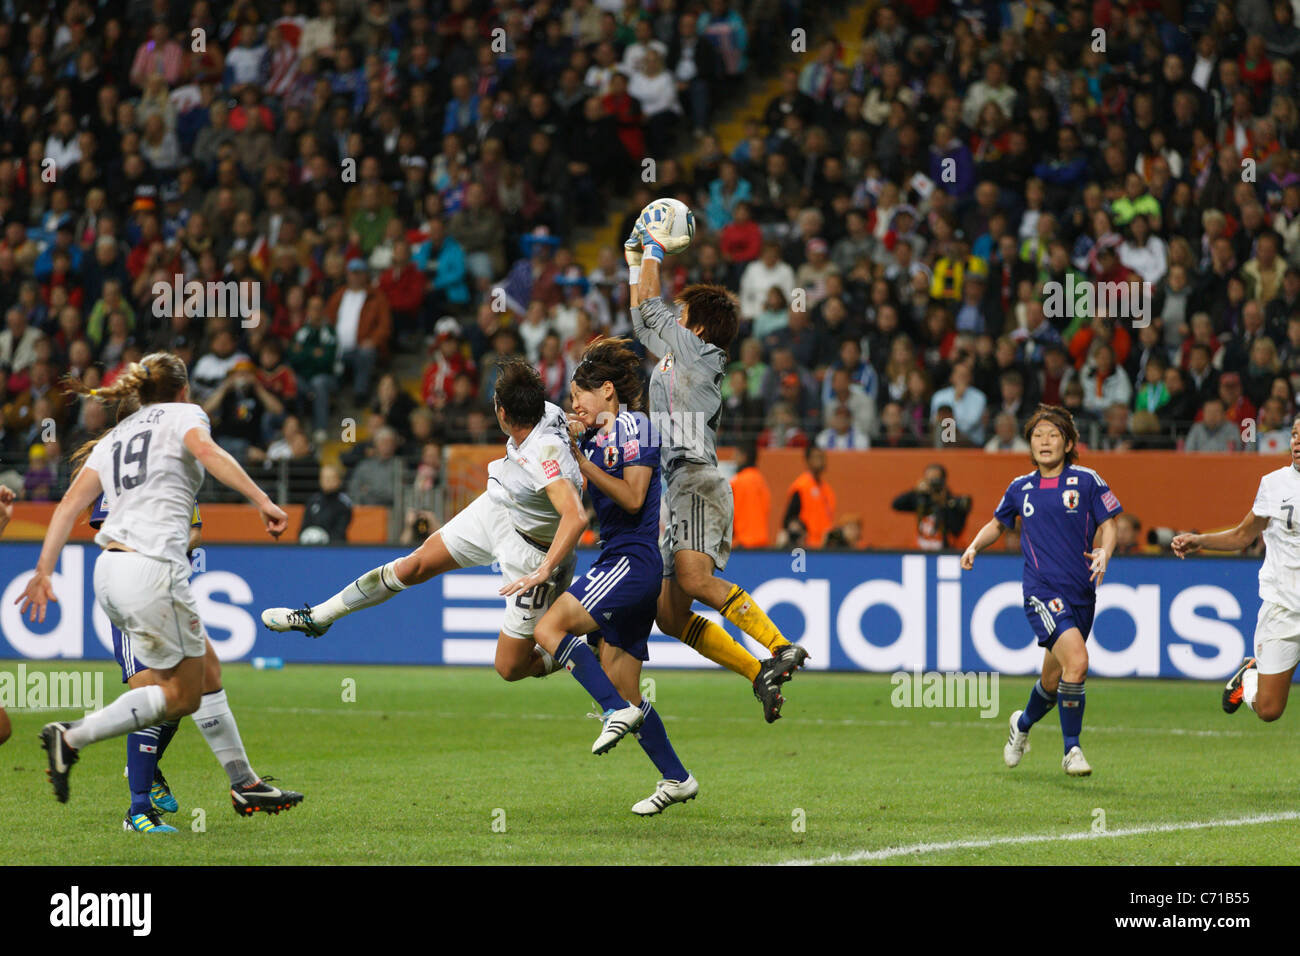 Japan goalkeeper Ayumi Kaihori jumps to make a save during the 2011 Women's World Cup final against the United - Stock Image